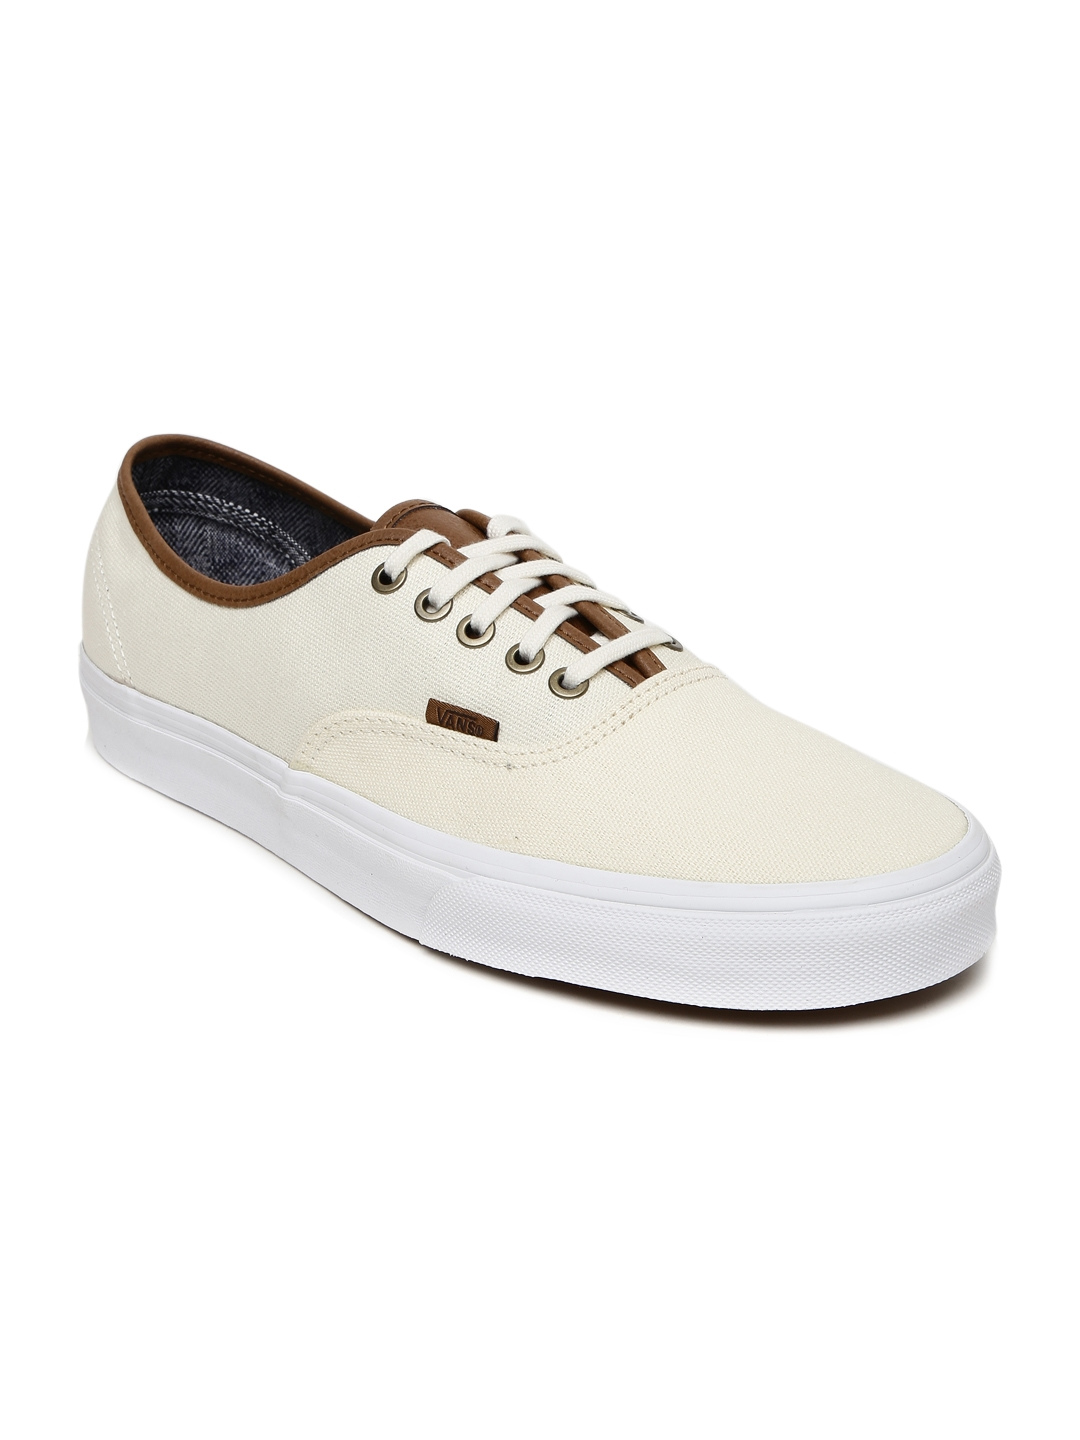 22ac0d763b Buy Vans Unisex Cream Coloured Authentic Sneakers - Casual Shoes for ...